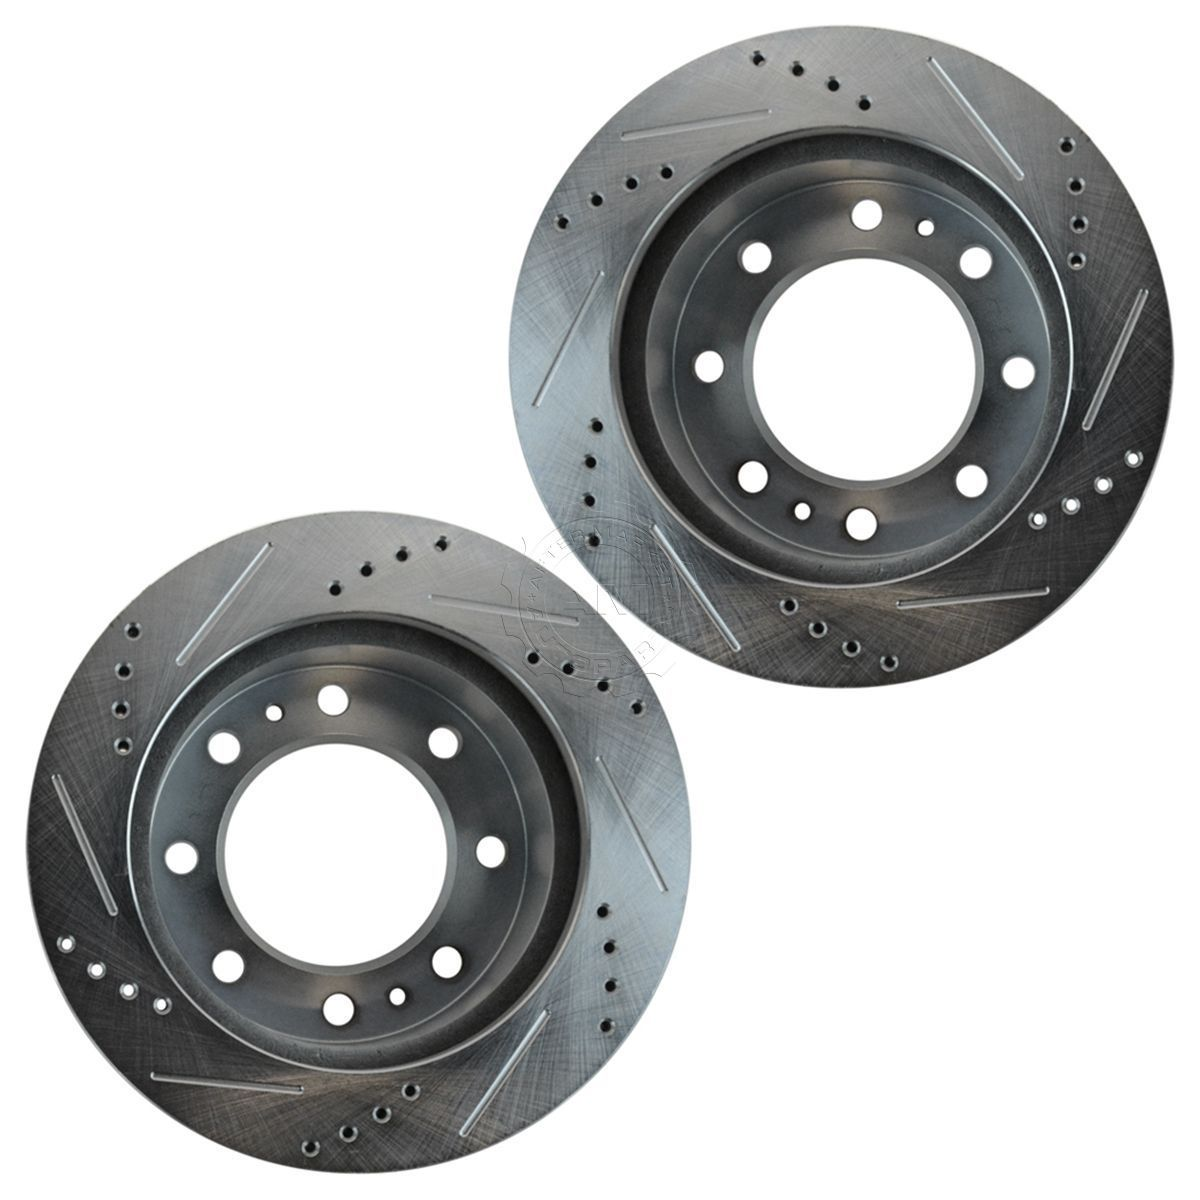 1999 2000 2001 2002 2003 Acura 3.2TL OE Replacement Rotors w//Ceramic Pads R